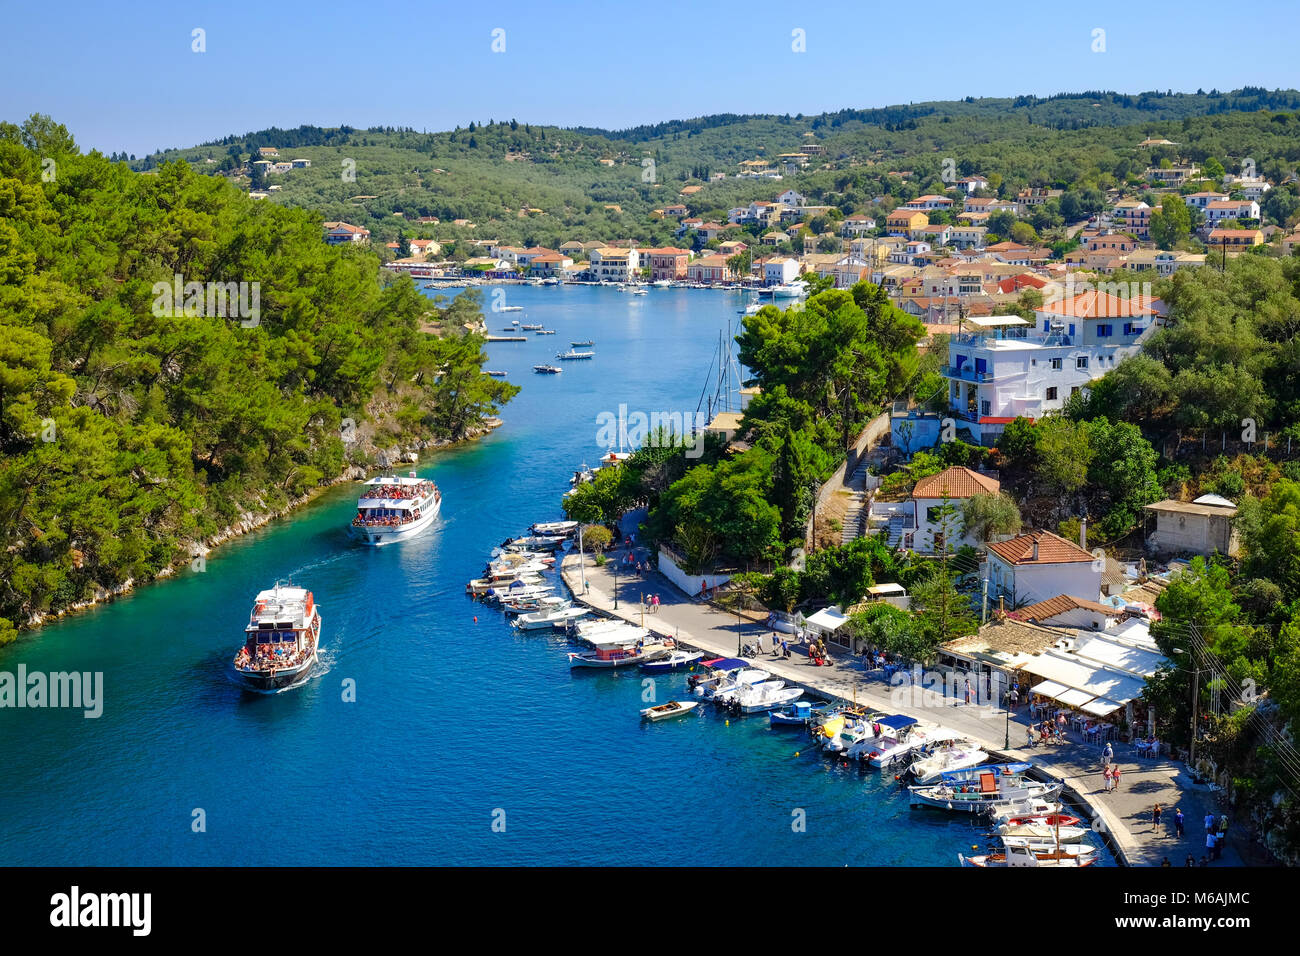 Paxos island with boat entering the grand canal - Stock Image